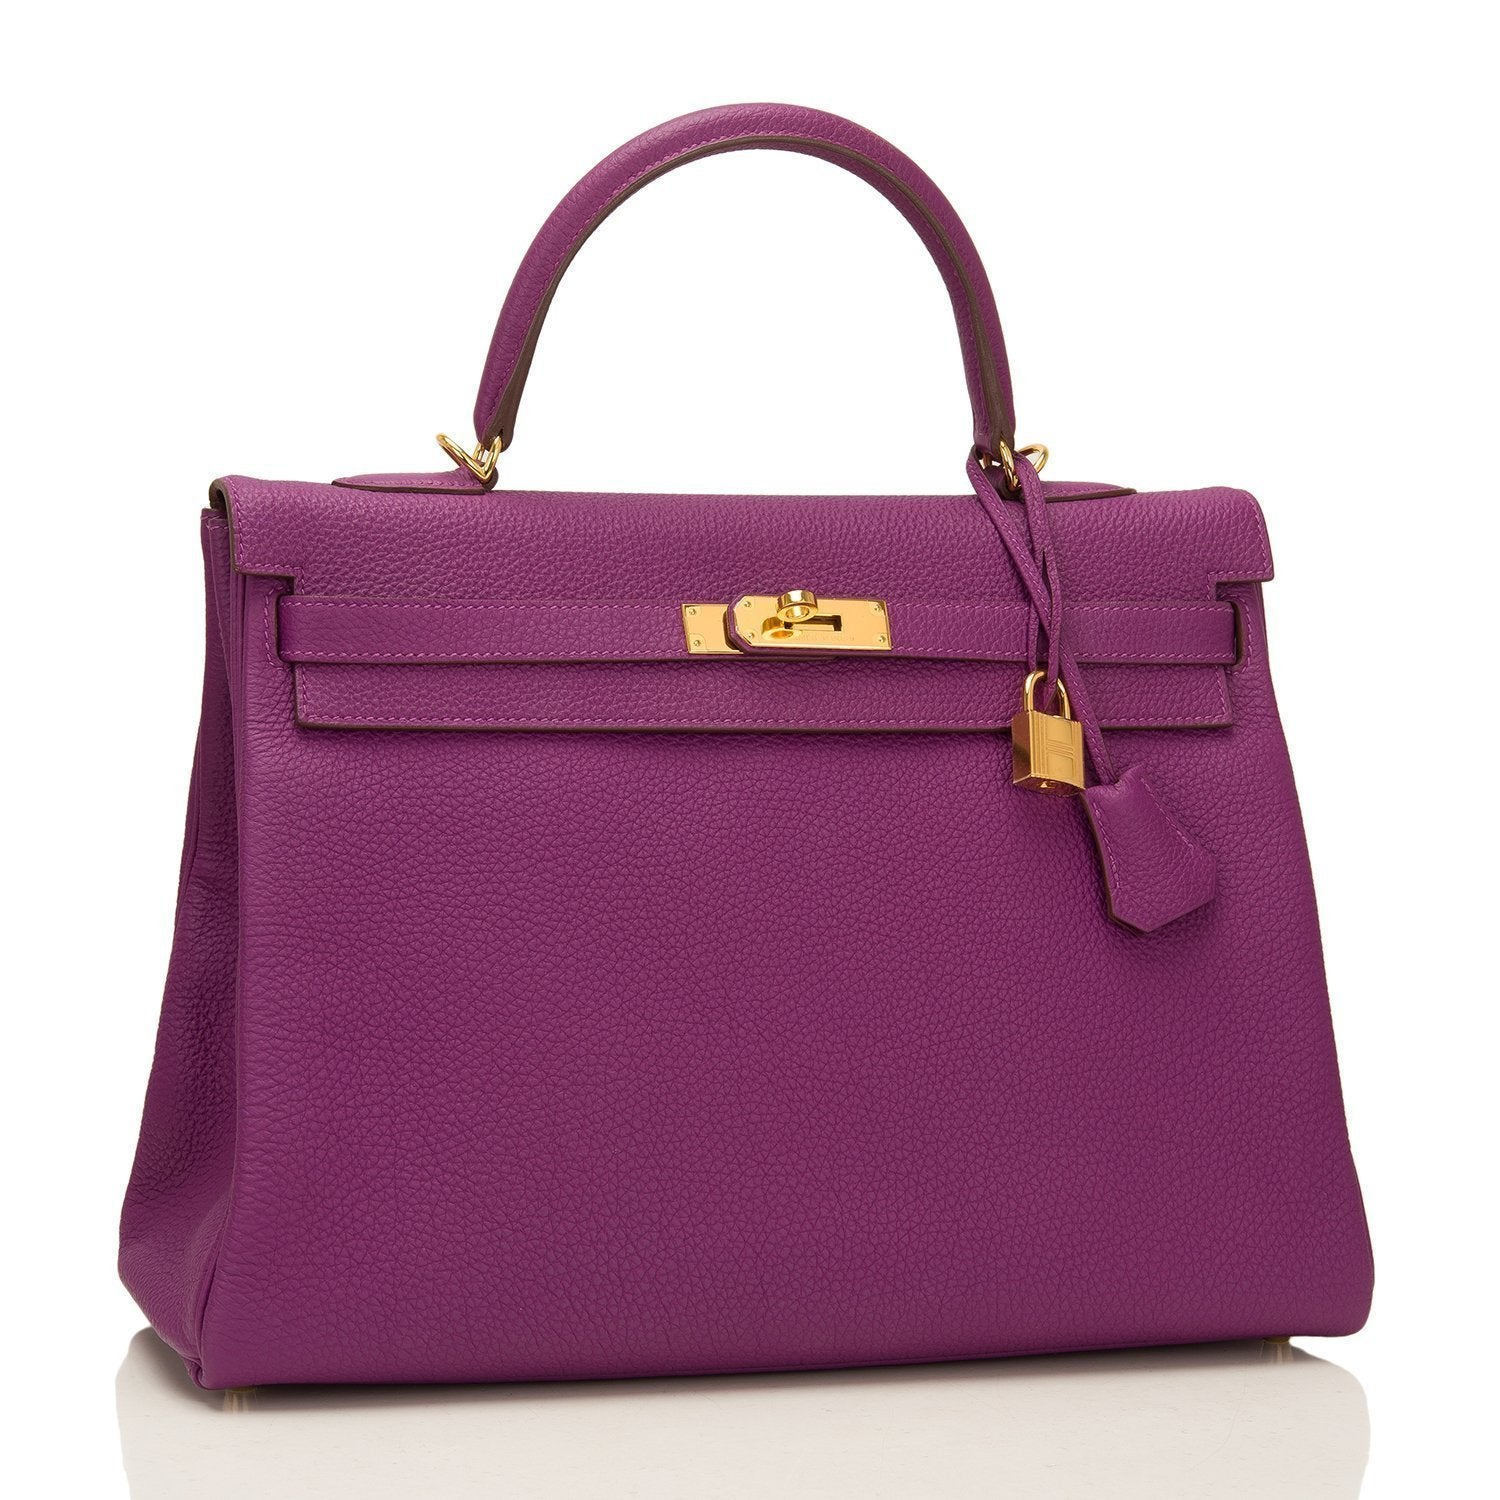 9507a2b8be07 Hermes Anemone Togo Retourne Kelly 35cm GHW – Madison Avenue Couture